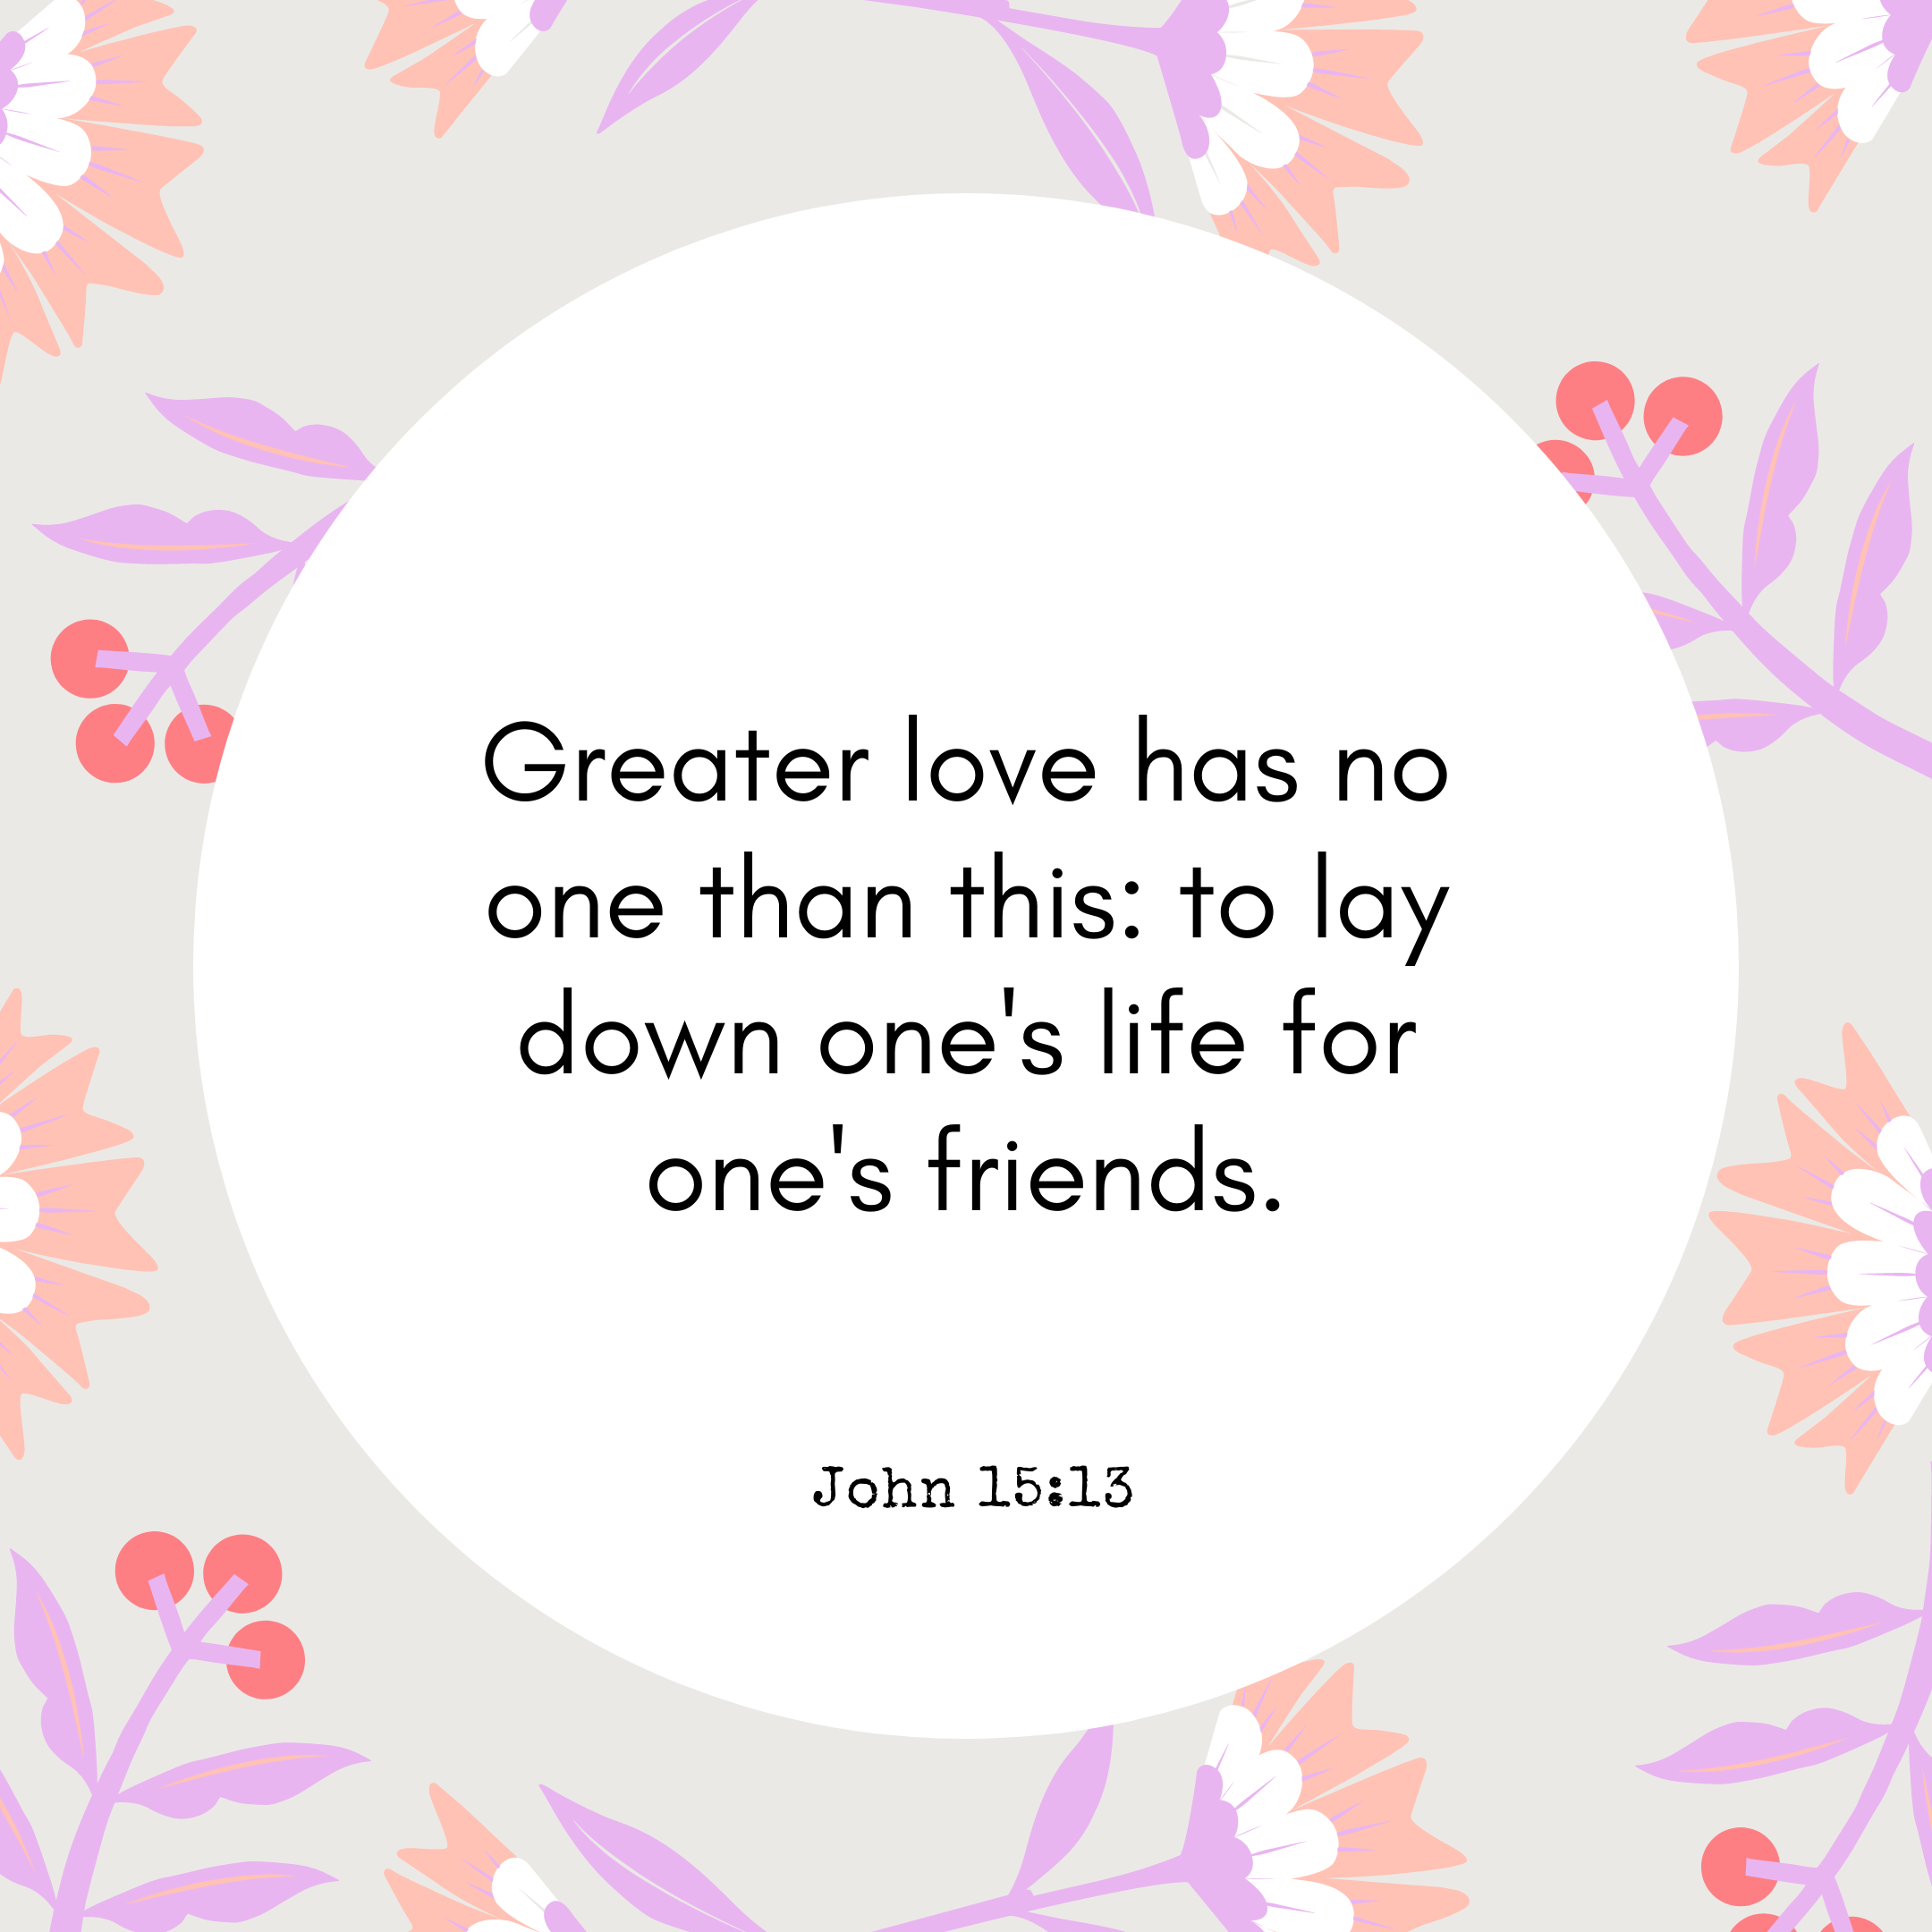 John 15:13 Greater love has no one than this: to lay down one's life for one's friends.